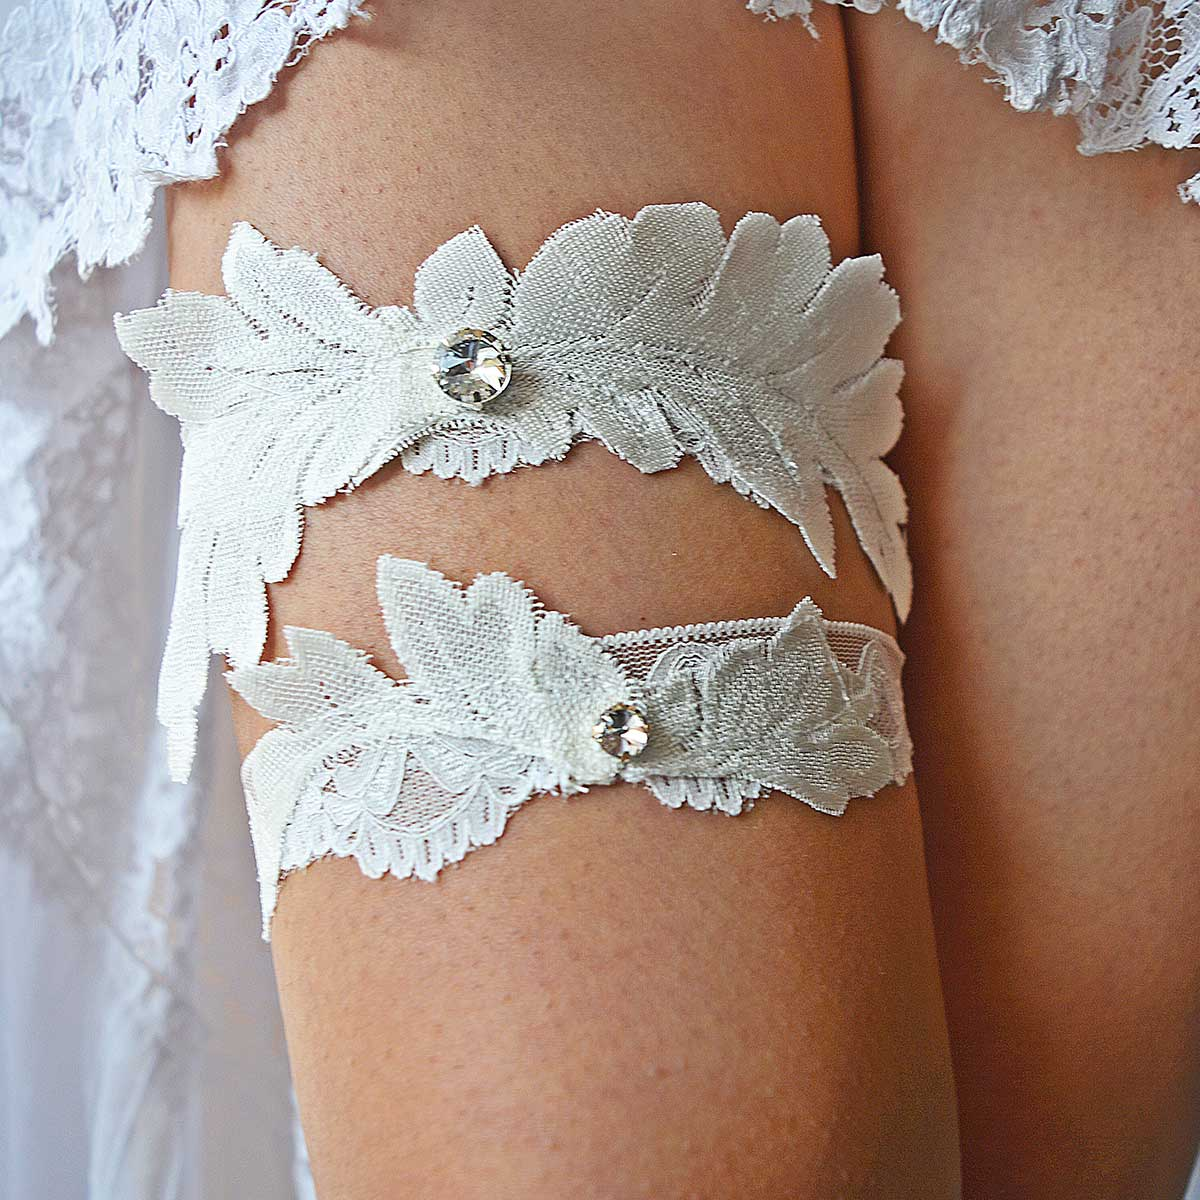 Ivory Bridal Garter With Applique Lace & Clear Rhinestones - Wedding Garter - SuzannaM Designs